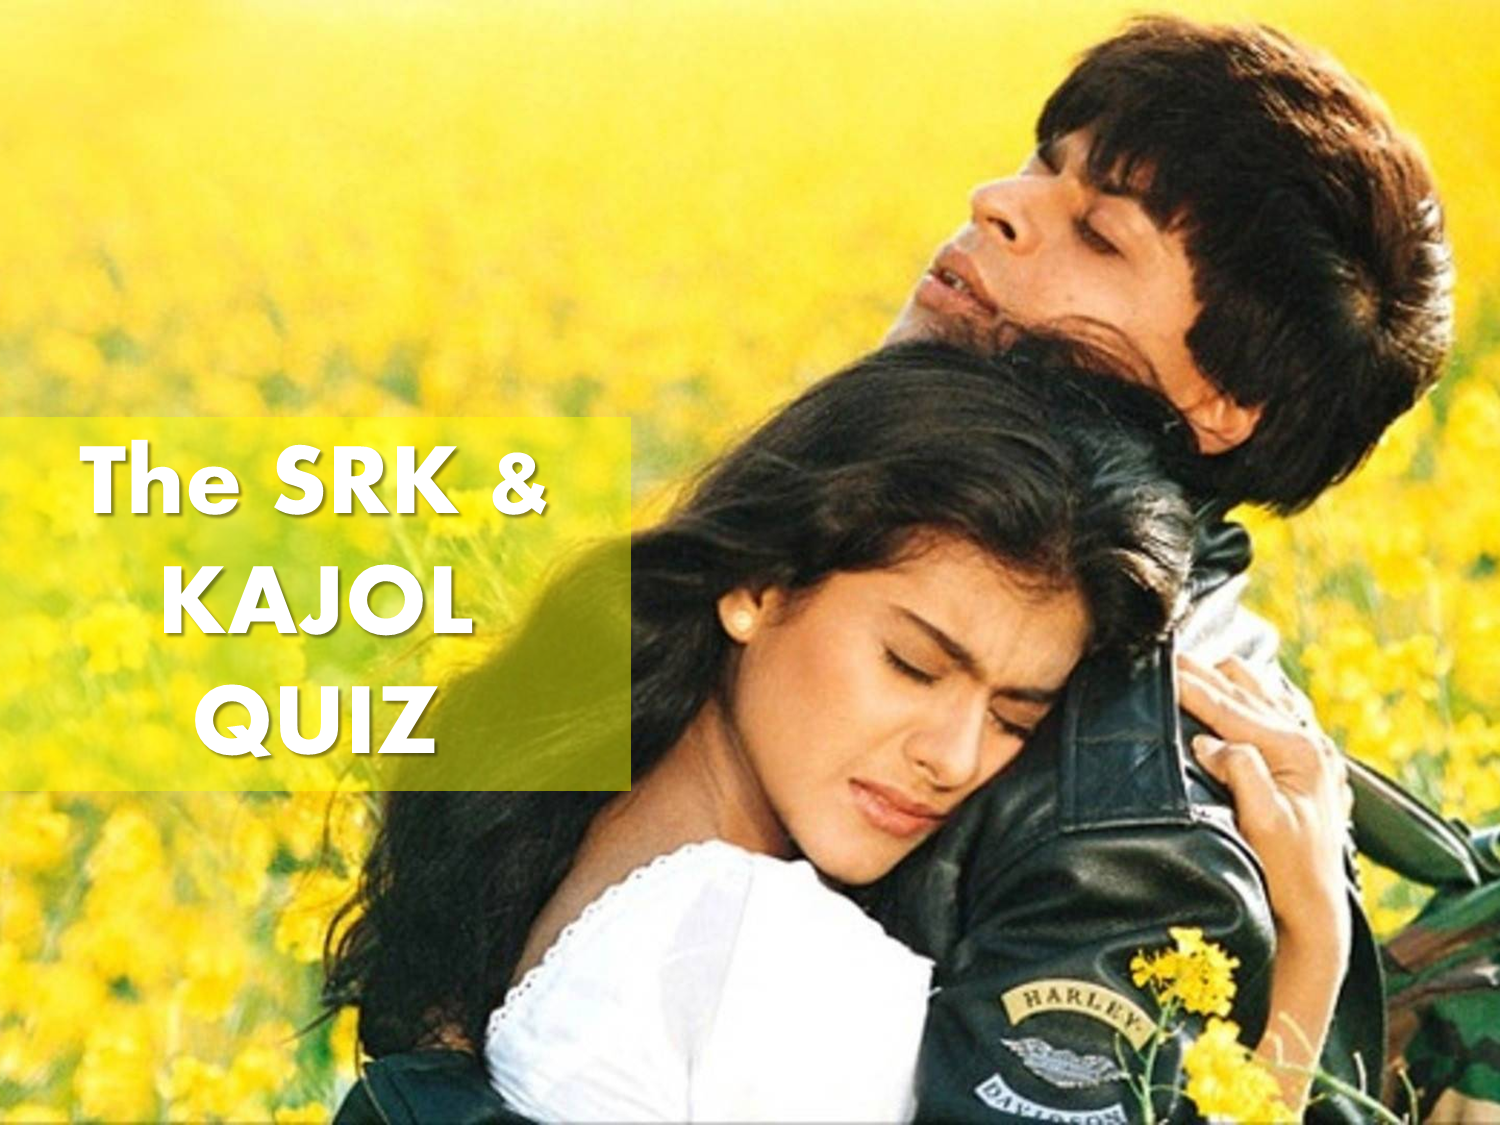 SRK & Kajol are legendary for their on screen chemistry. Dilwale, their latest film is being awaited with anticipation. In the meanwhile reacquaint yourself with this magical pair. http://goo.gl/w6qQmH